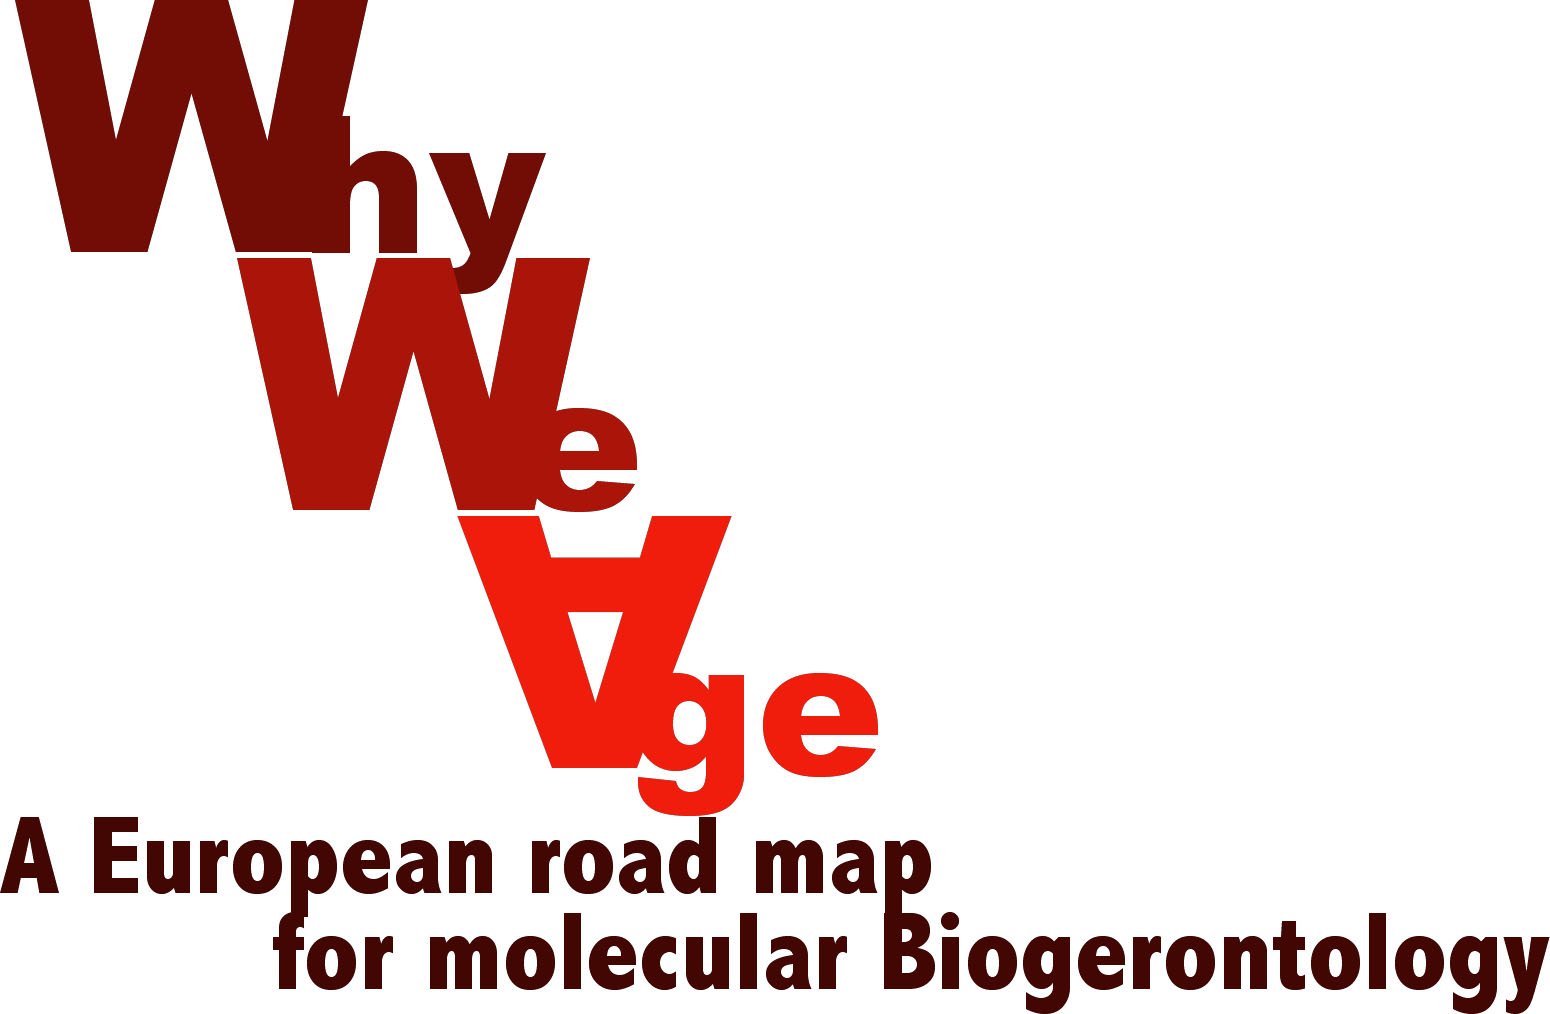 A European road map for molecular Biogerontology